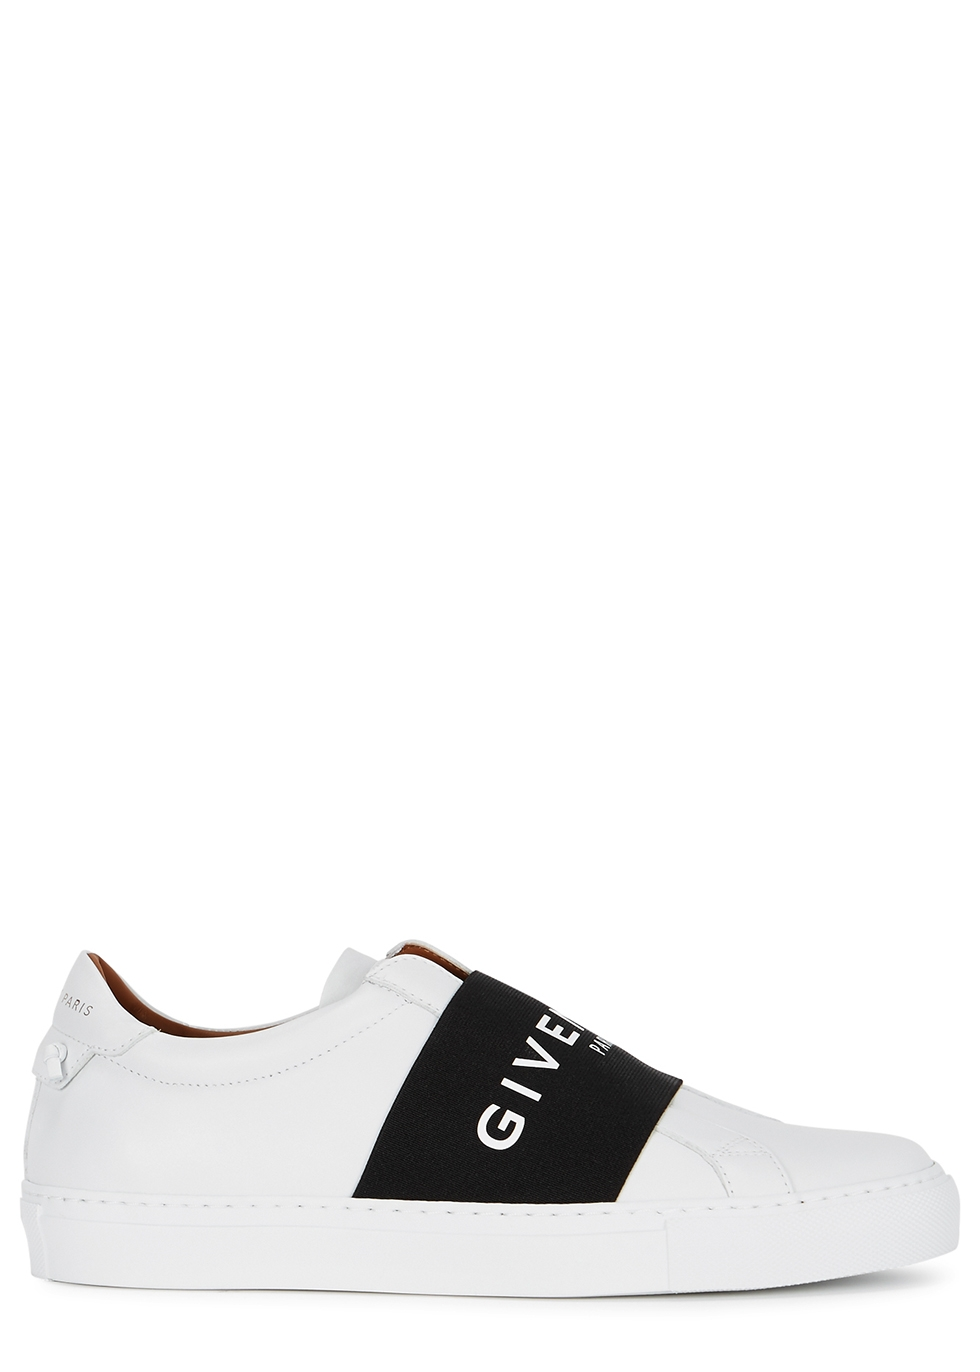 GIVENCHY | Givenchy Urban Street White Leather Trainers | Goxip